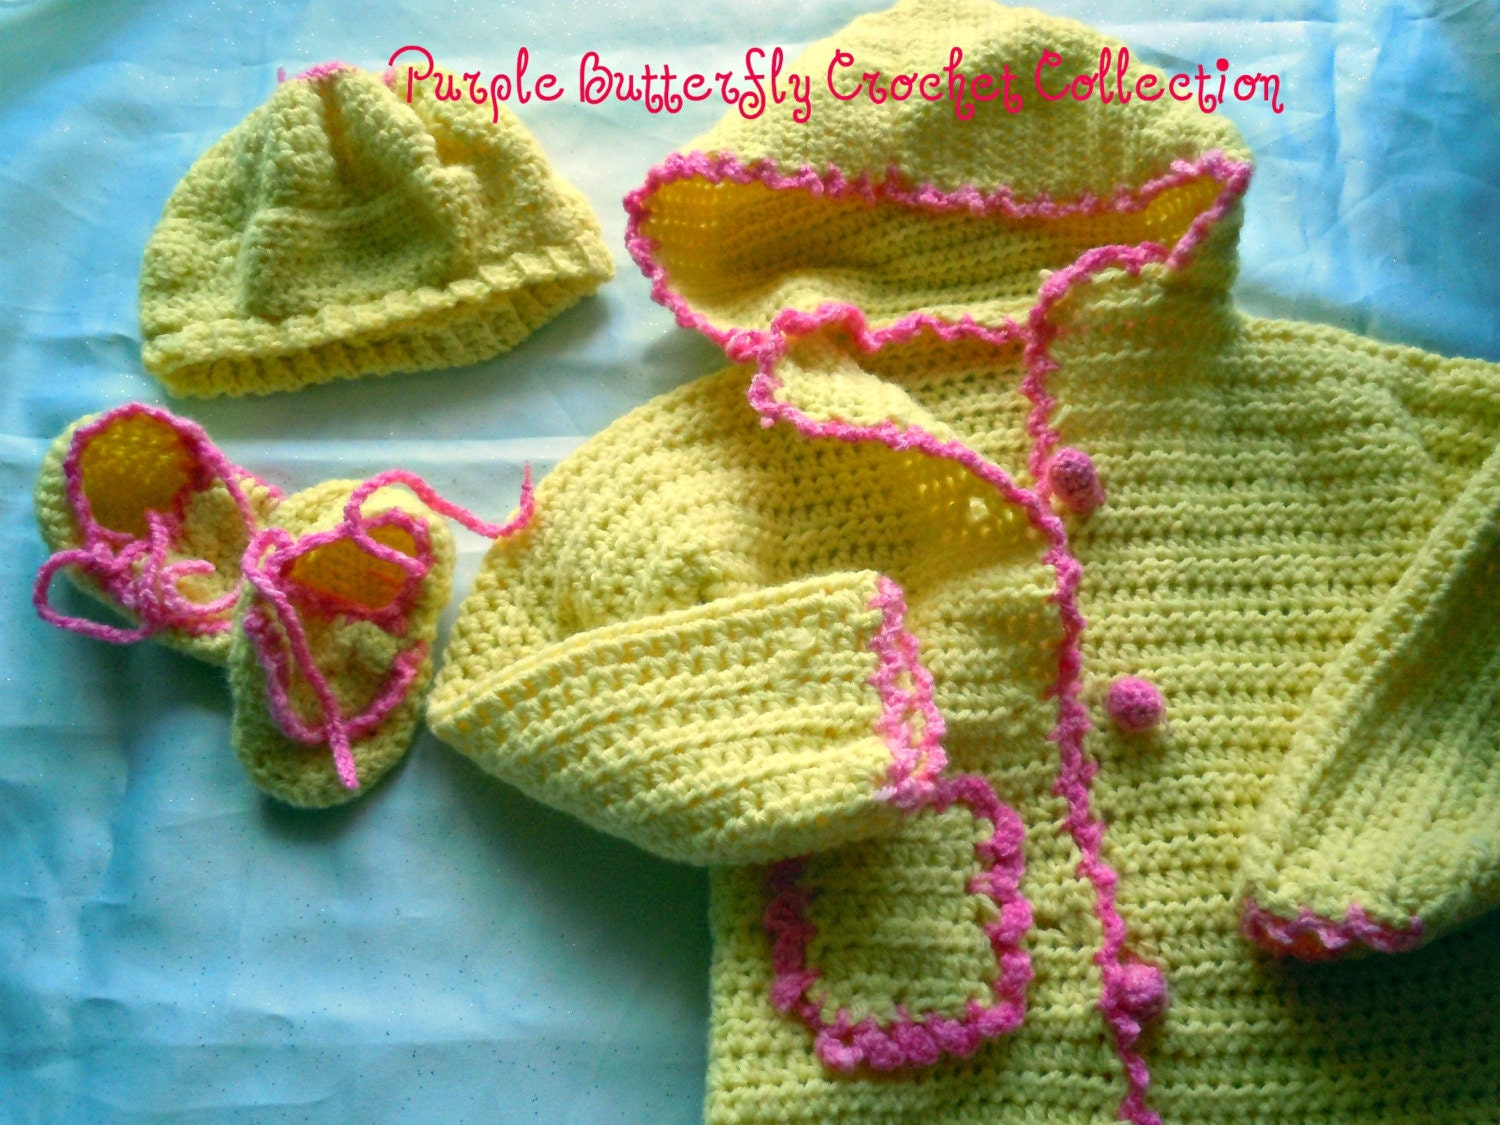 Crocheted Hooded Baby sweater, beret and bootee set